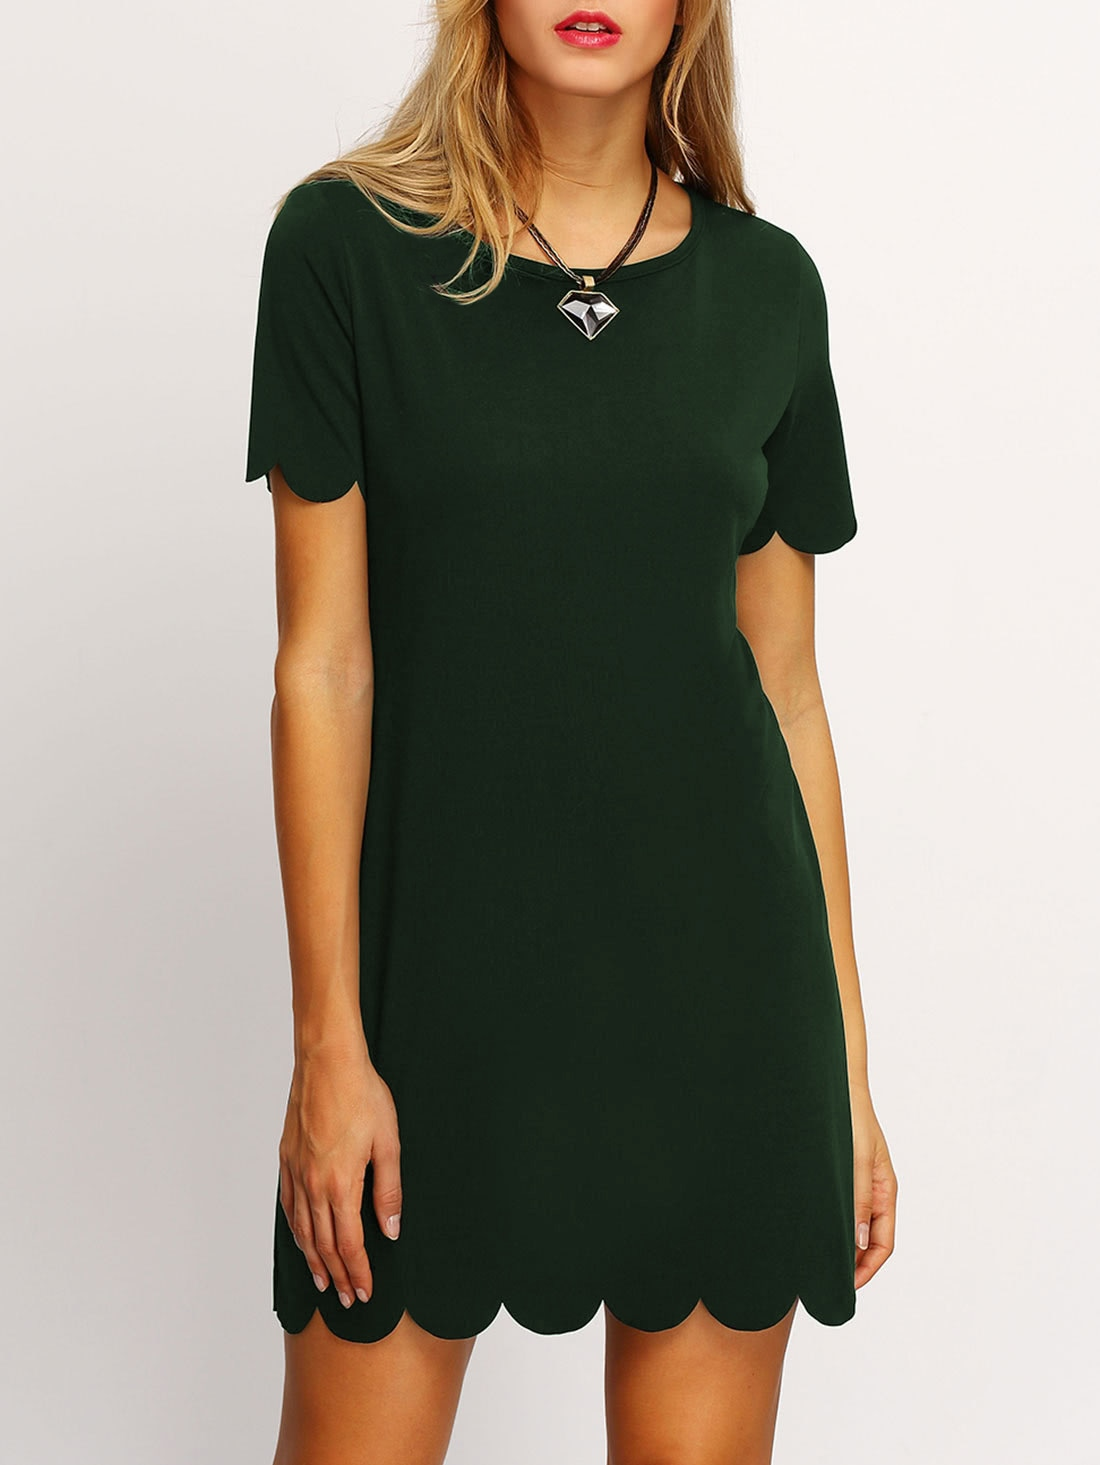 Buttoned Keyhole Back Scallop Dress scallop ruffle hem buttoned keyhole back shell top